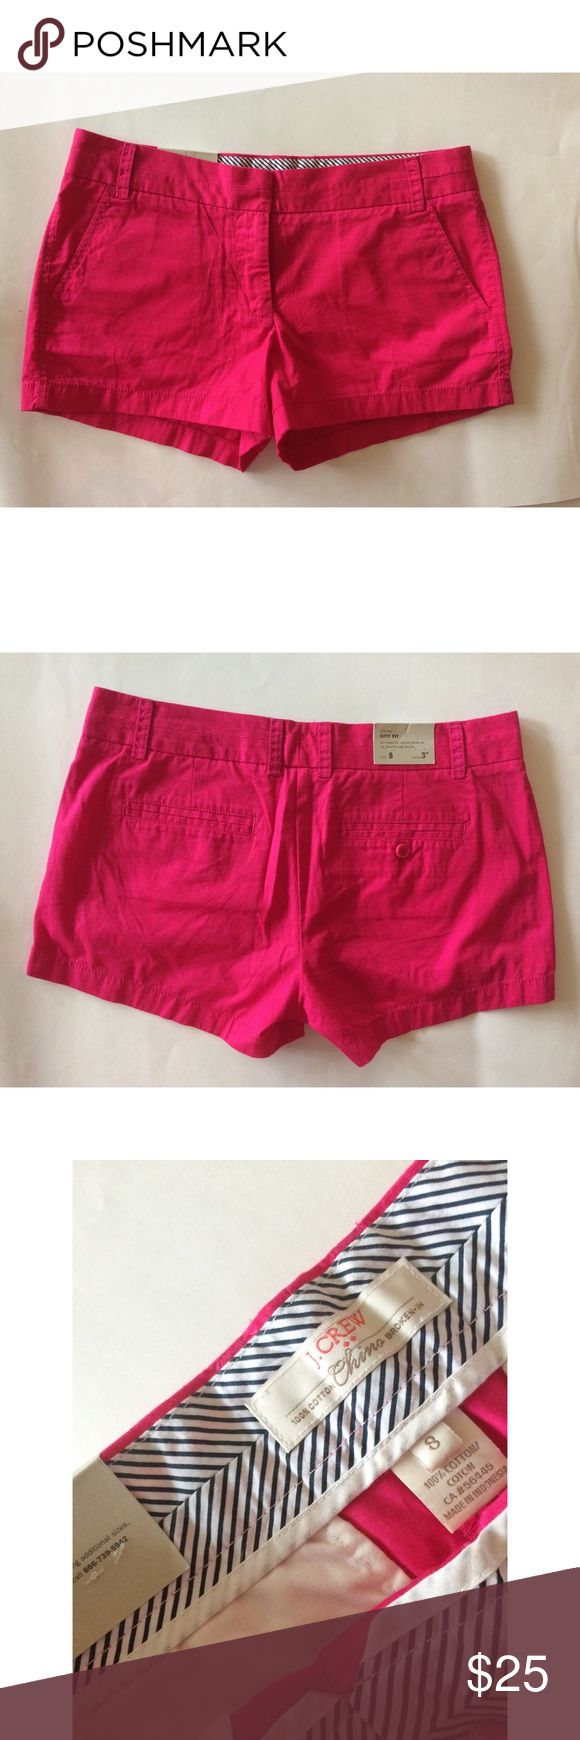 """J.Crew Factory City Fit 3 Chino Hot pink Shorts Get these hot pink J.Crew Factory City Fit 3 Chino Shorts for your spring and summer wardrobe! 🌺 Size 8. 🌺 New With Tags. Measurements are: waist : 17"""". Rise is: 8.75"""". Inseam is 3"""". Please use measurements to determine personal desired fit.  As I'm not responsible for wrong fit. ♥️Bundle your items to save. Take a look at my closet for items for your whole family.  (The last photo is the same City Fit Chino 3"""" but in red.)  I have the hot…"""